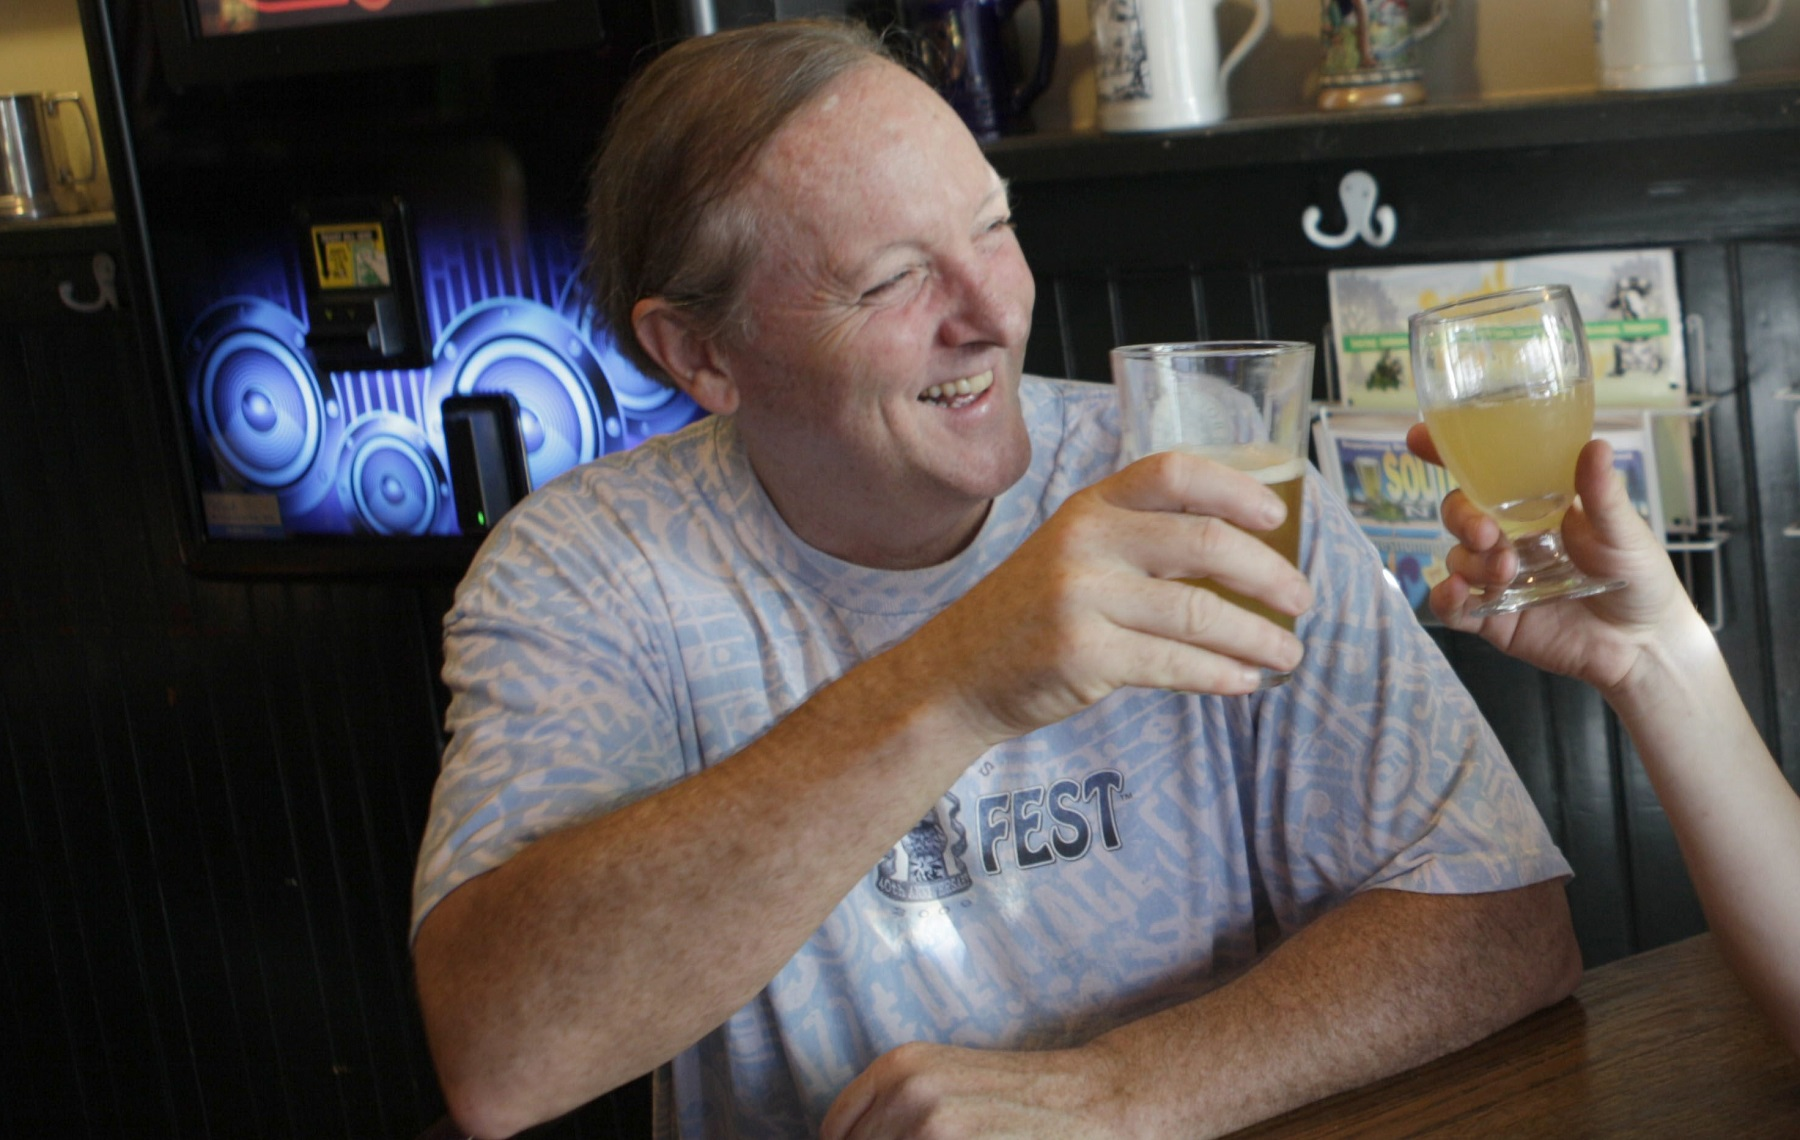 Great Lakes Brewing News publisher will resign after article's backlash